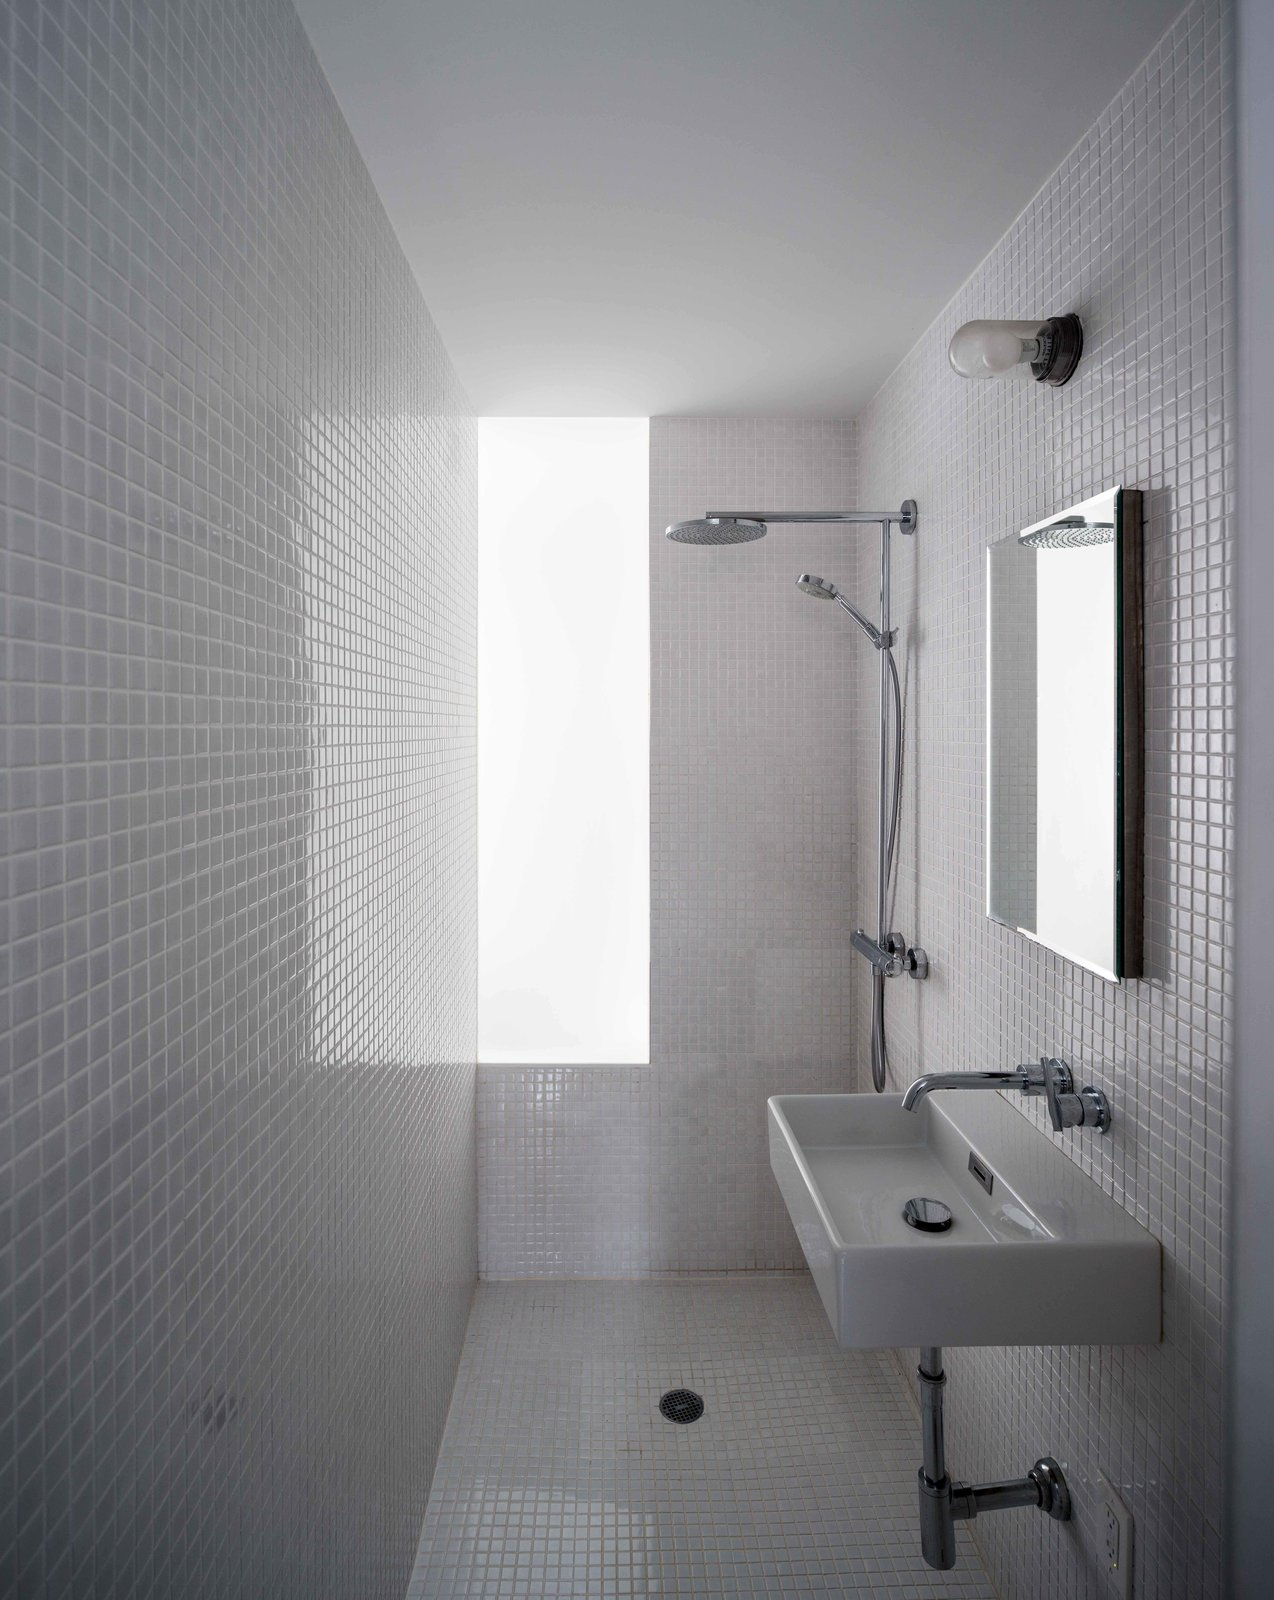 Bath Room, Porcelain Tile Floor, One Piece Toilet, Open Shower, Wall Mount Sink, Ceramic Tile Wall, and Recessed Lighting  Photos from Ridgewood Townhouse